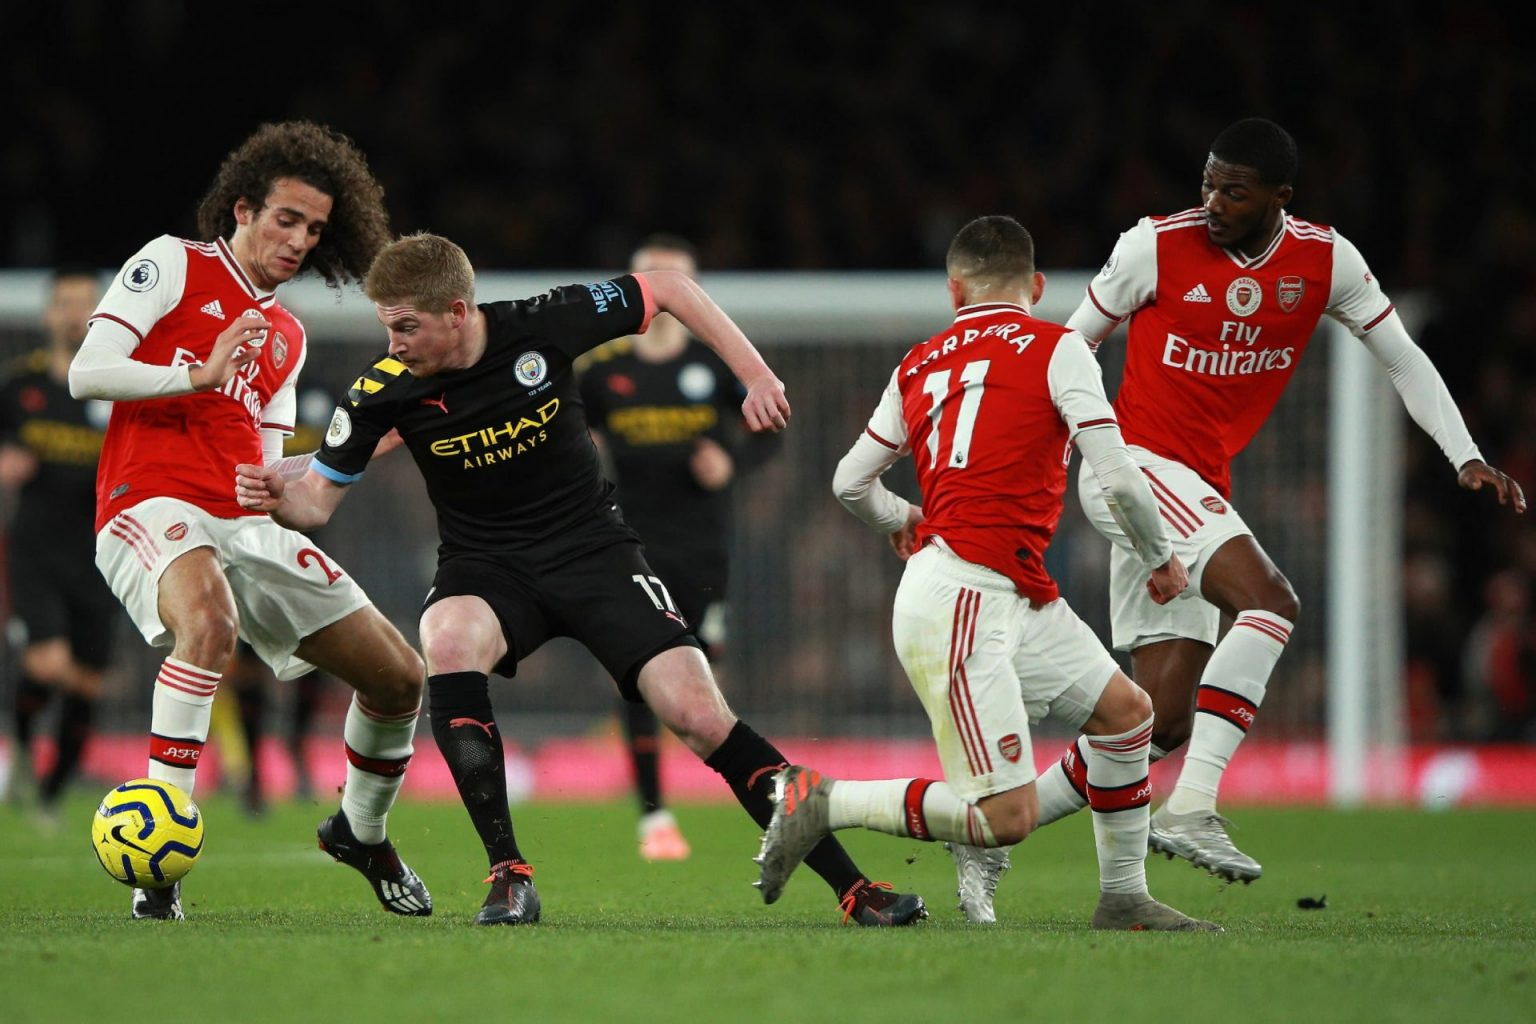 Kevin De Bruyne dazzling in the midst of 3 Arsenal players